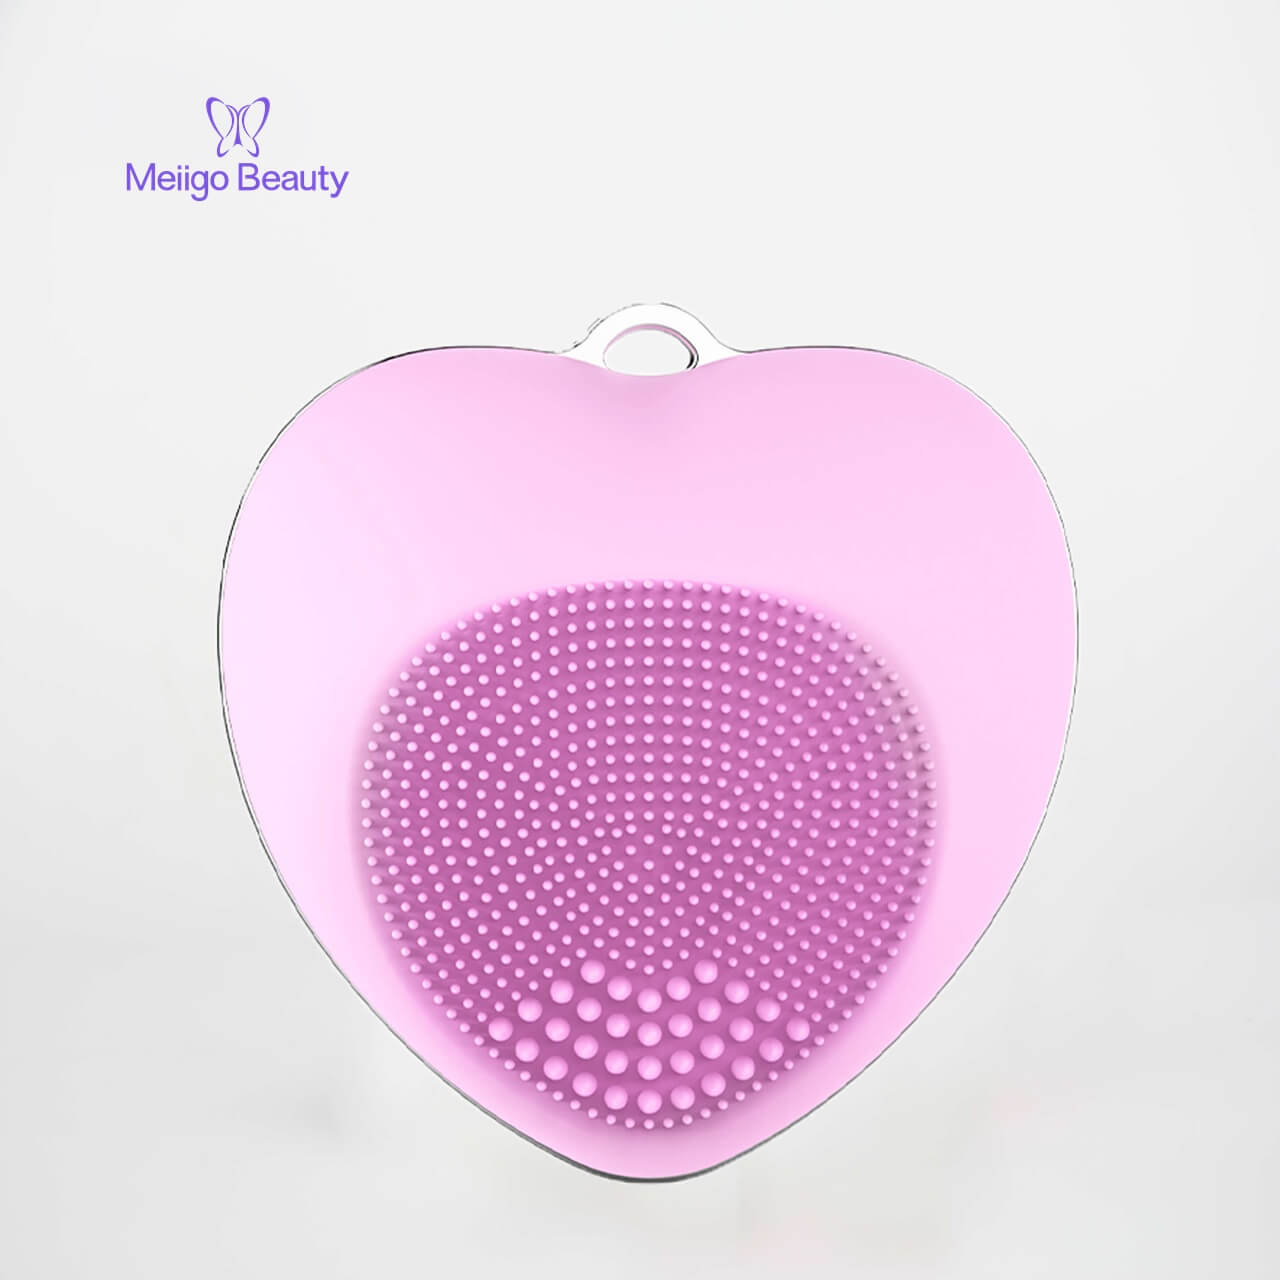 Meiigo beauty heart shape facial brush BR 002 3 - Facial cleansing brush mini silicone sonic face massager  BR-002